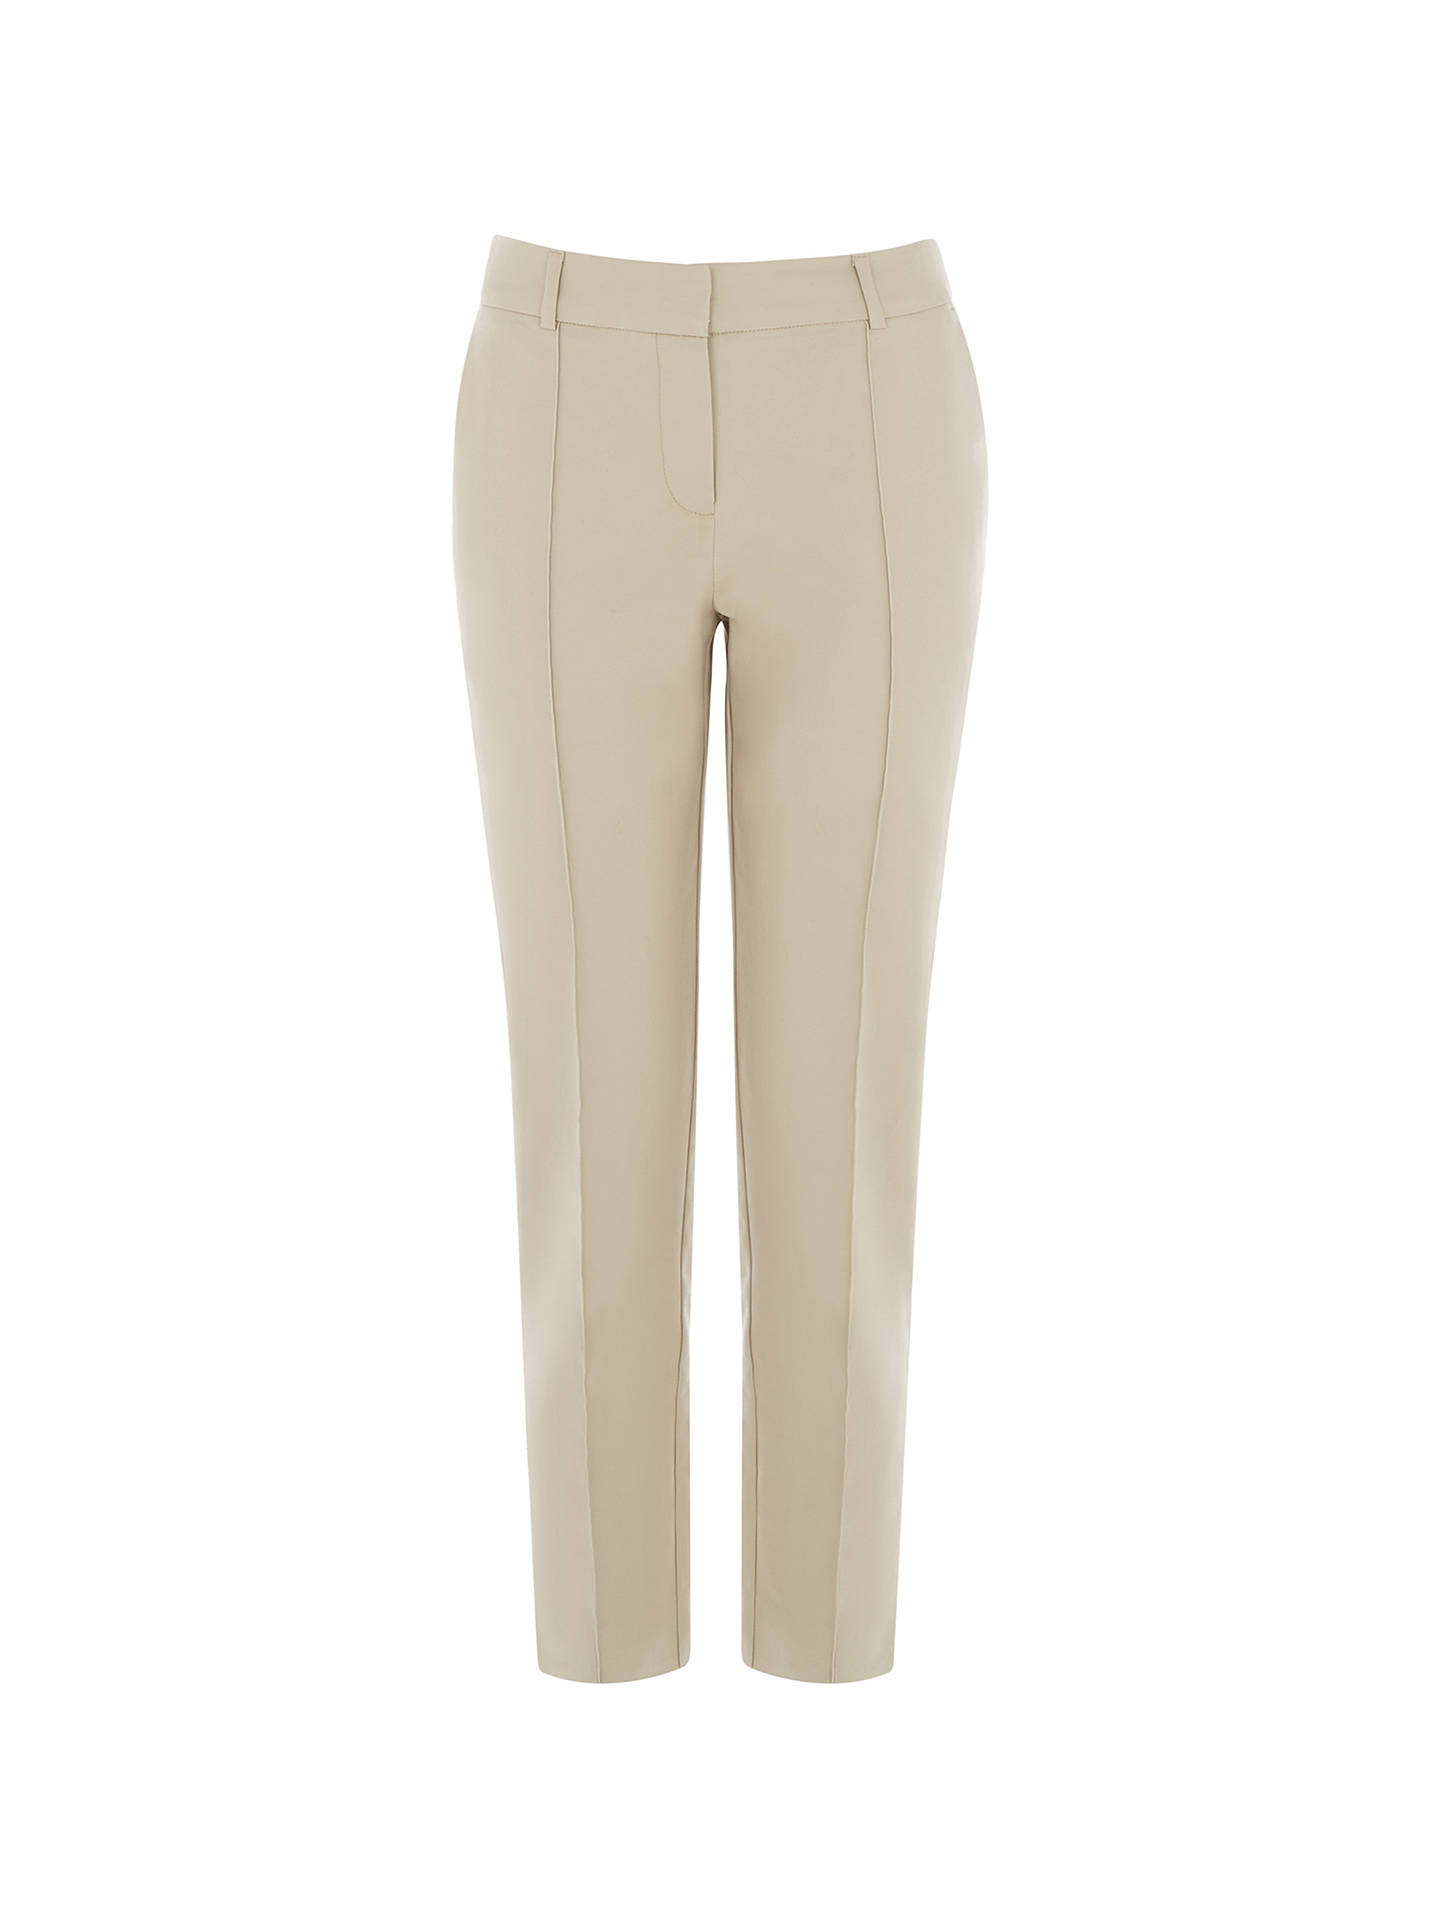 BuyWarehouse Compact Cotton Trousers, Stone, 6 Online at johnlewis.com